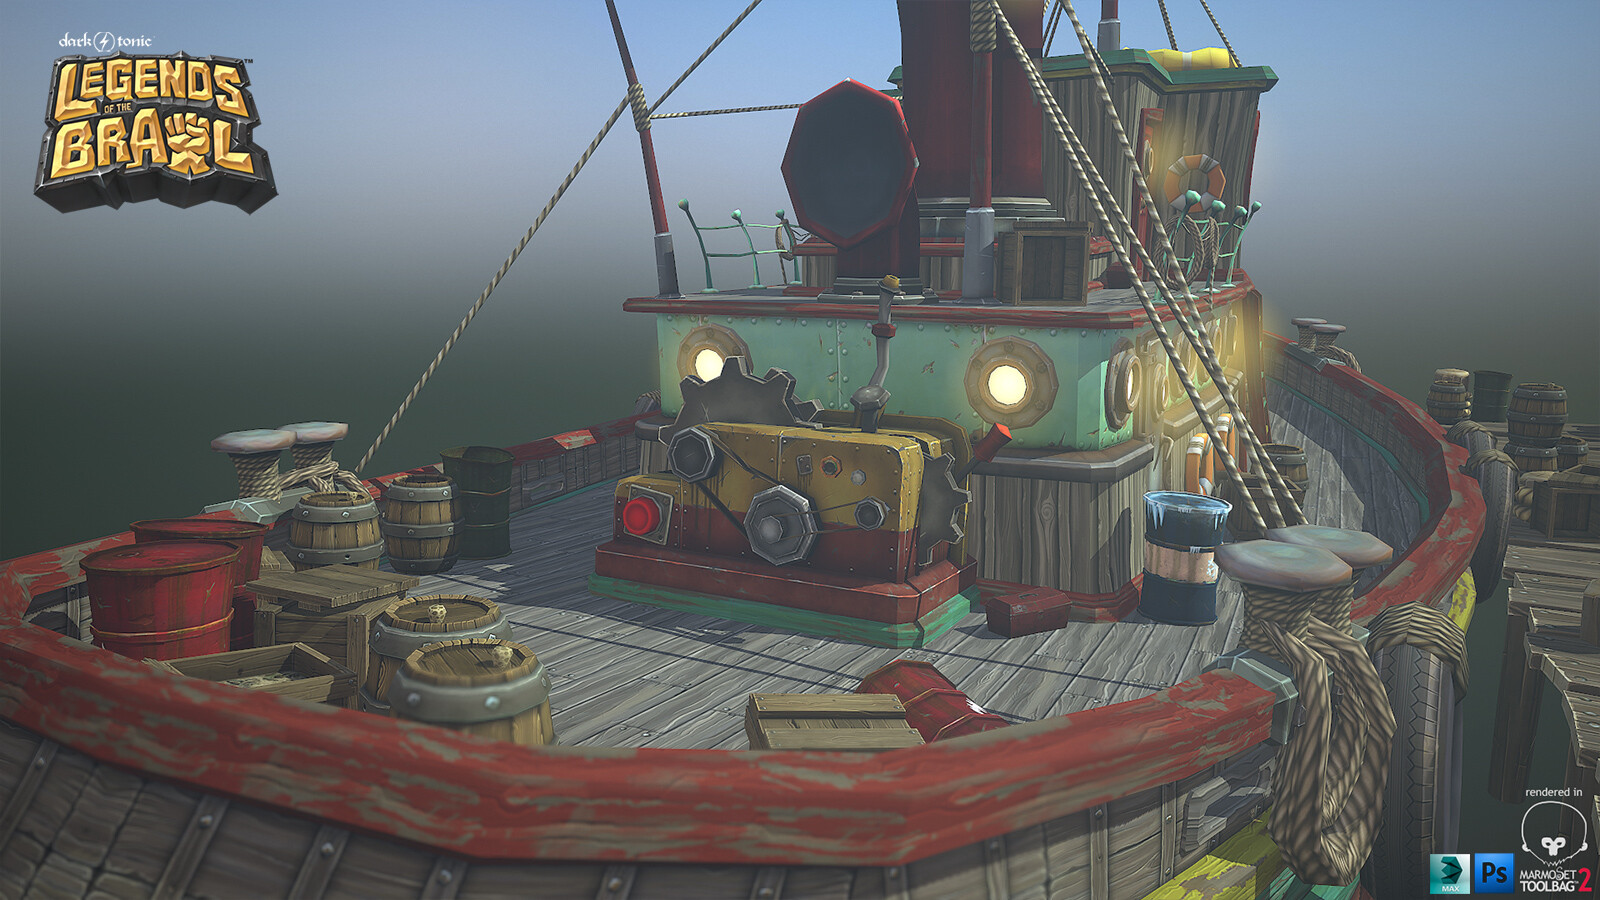 Stylized Tugboat, Props and Docks created for Legends of the Brawl